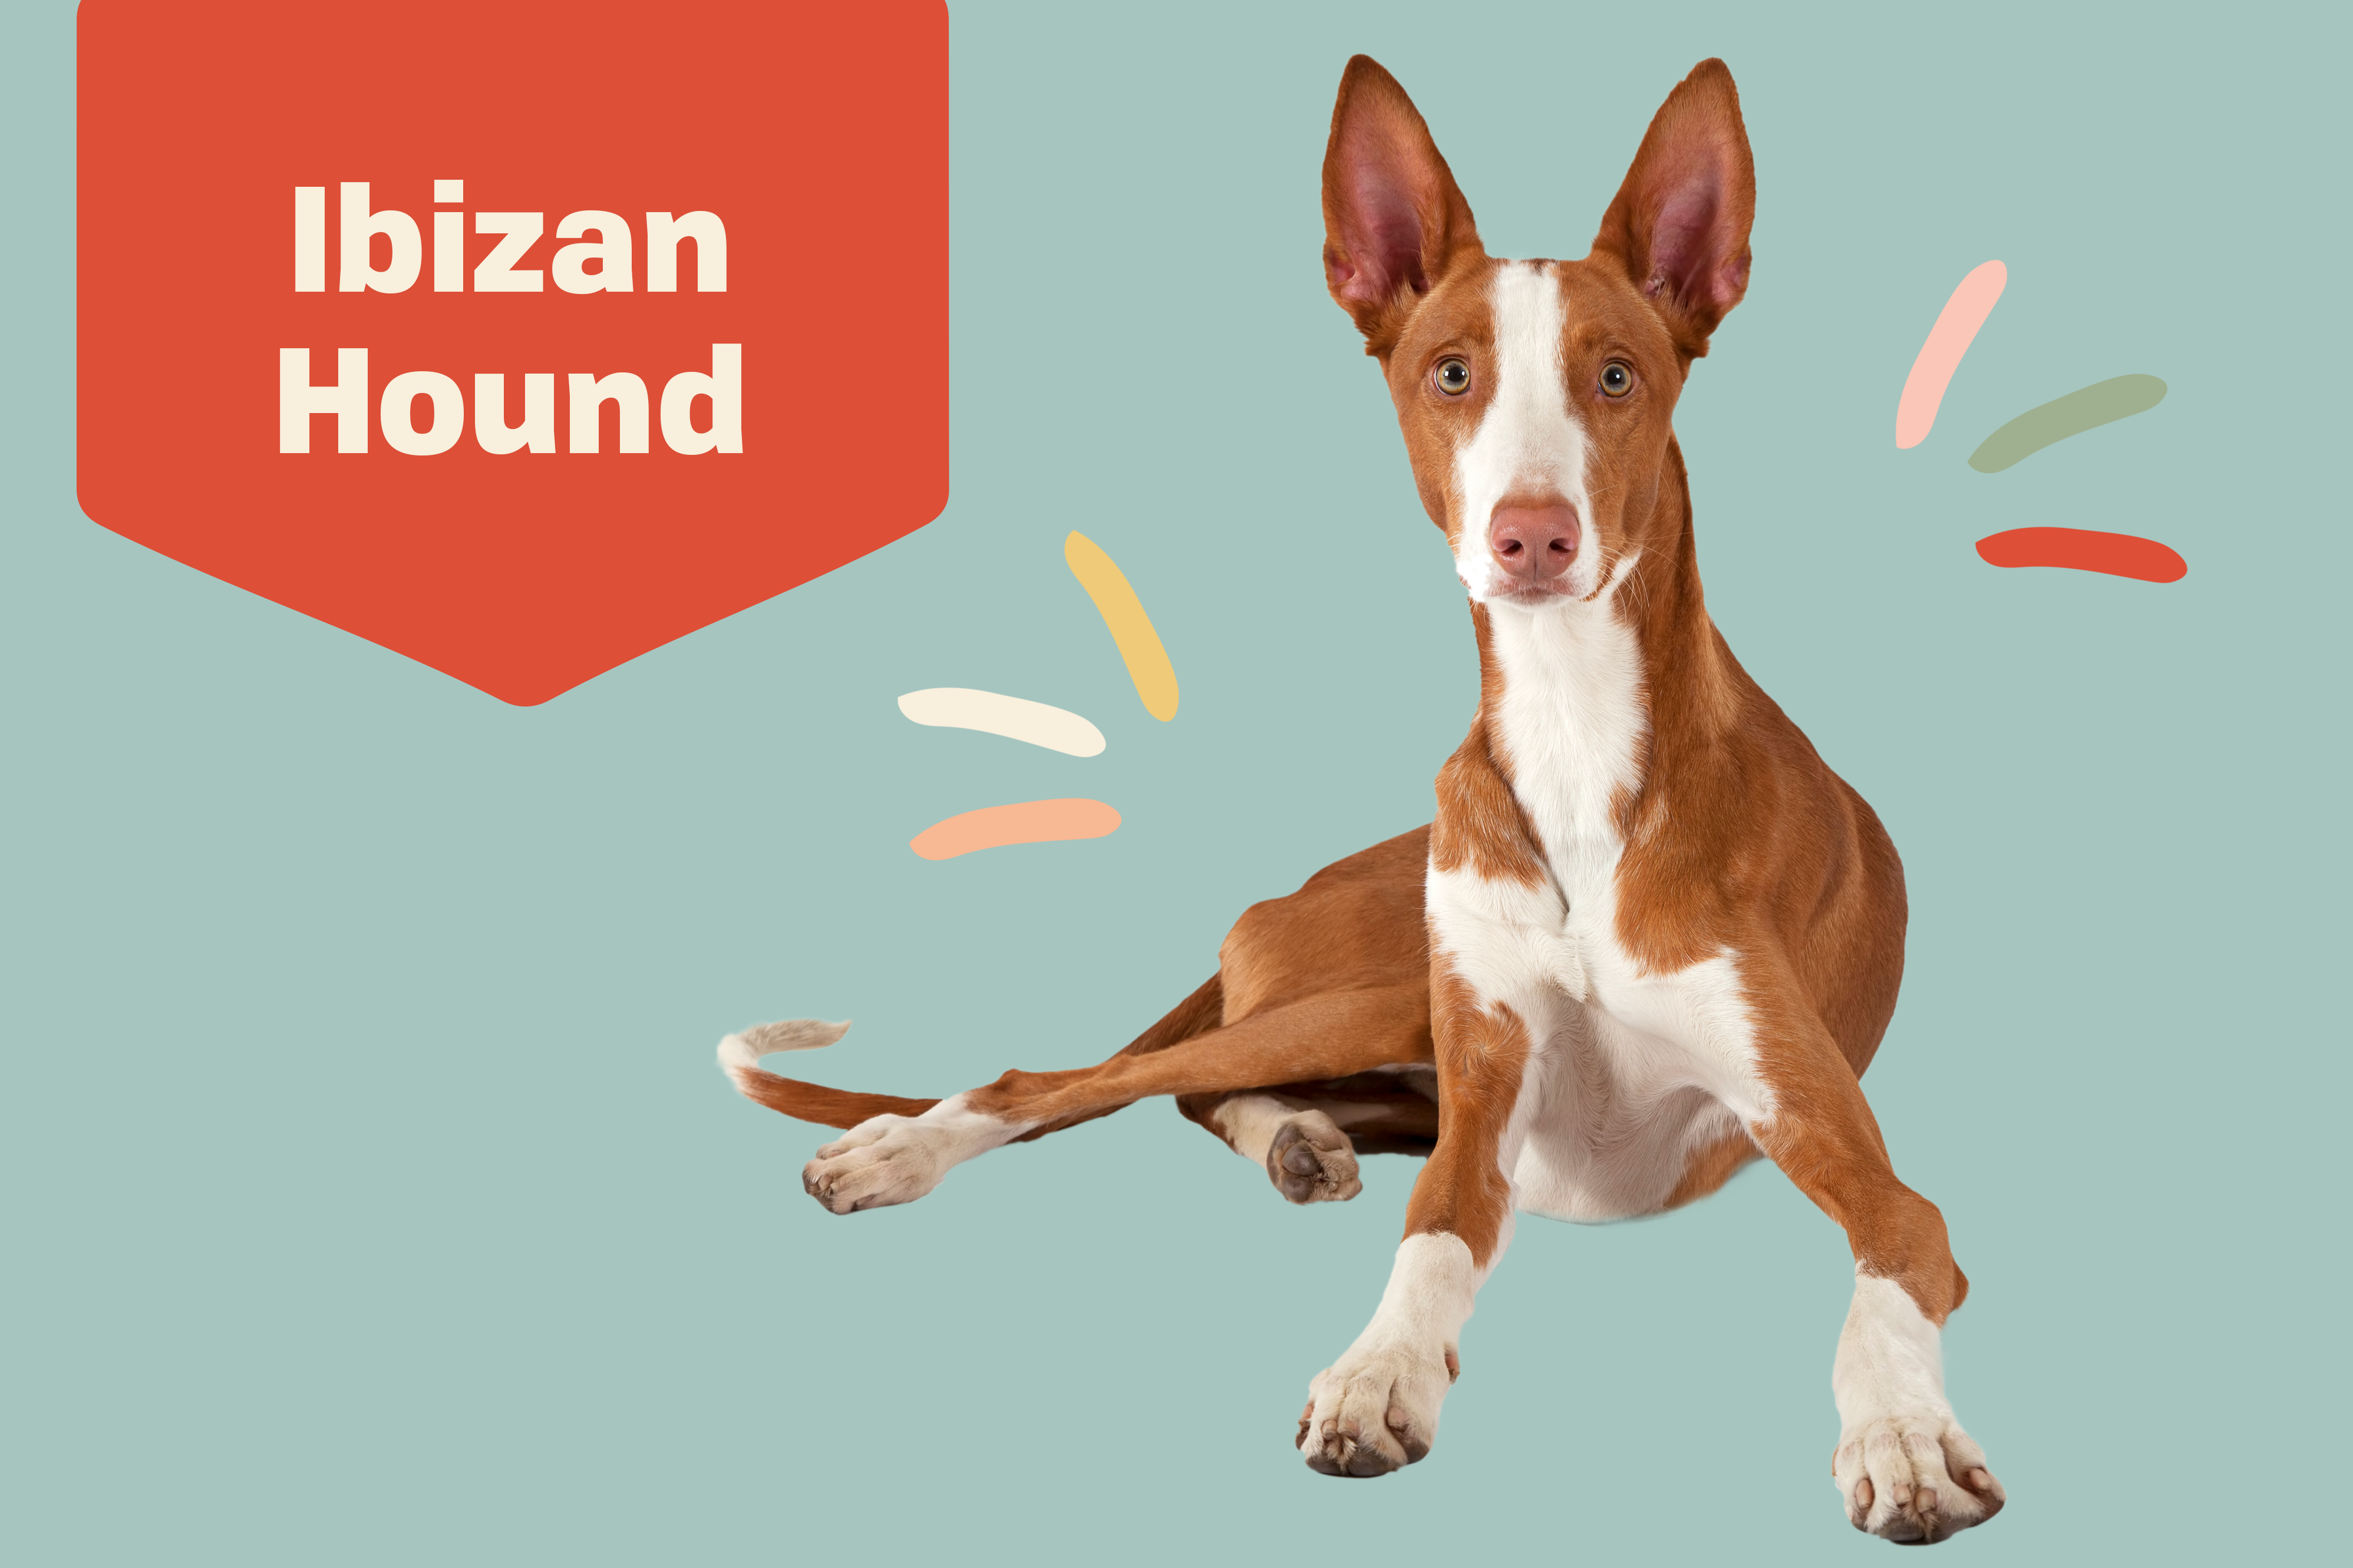 ibizan hound dog breed profile treatment lying on a solid blue background